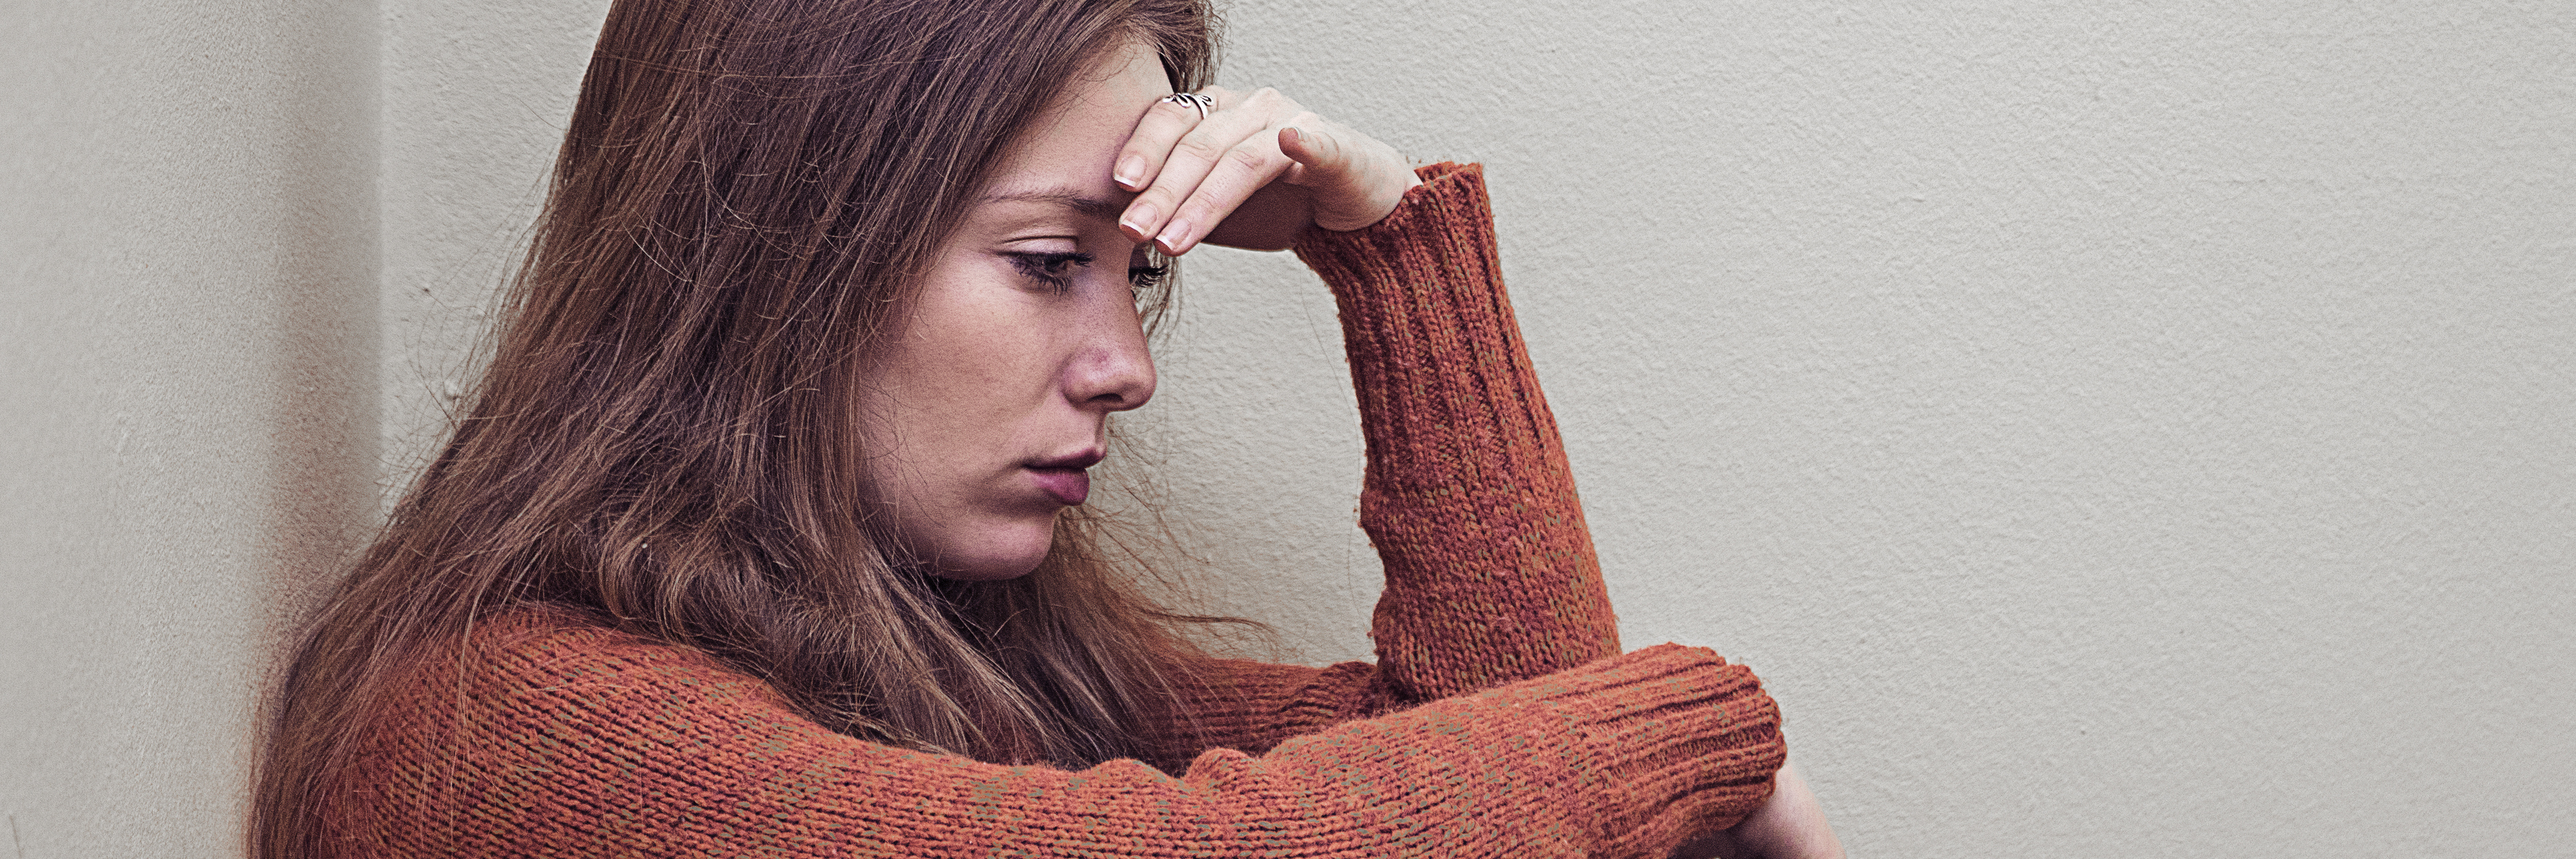 woman sitting alone in corner with depression